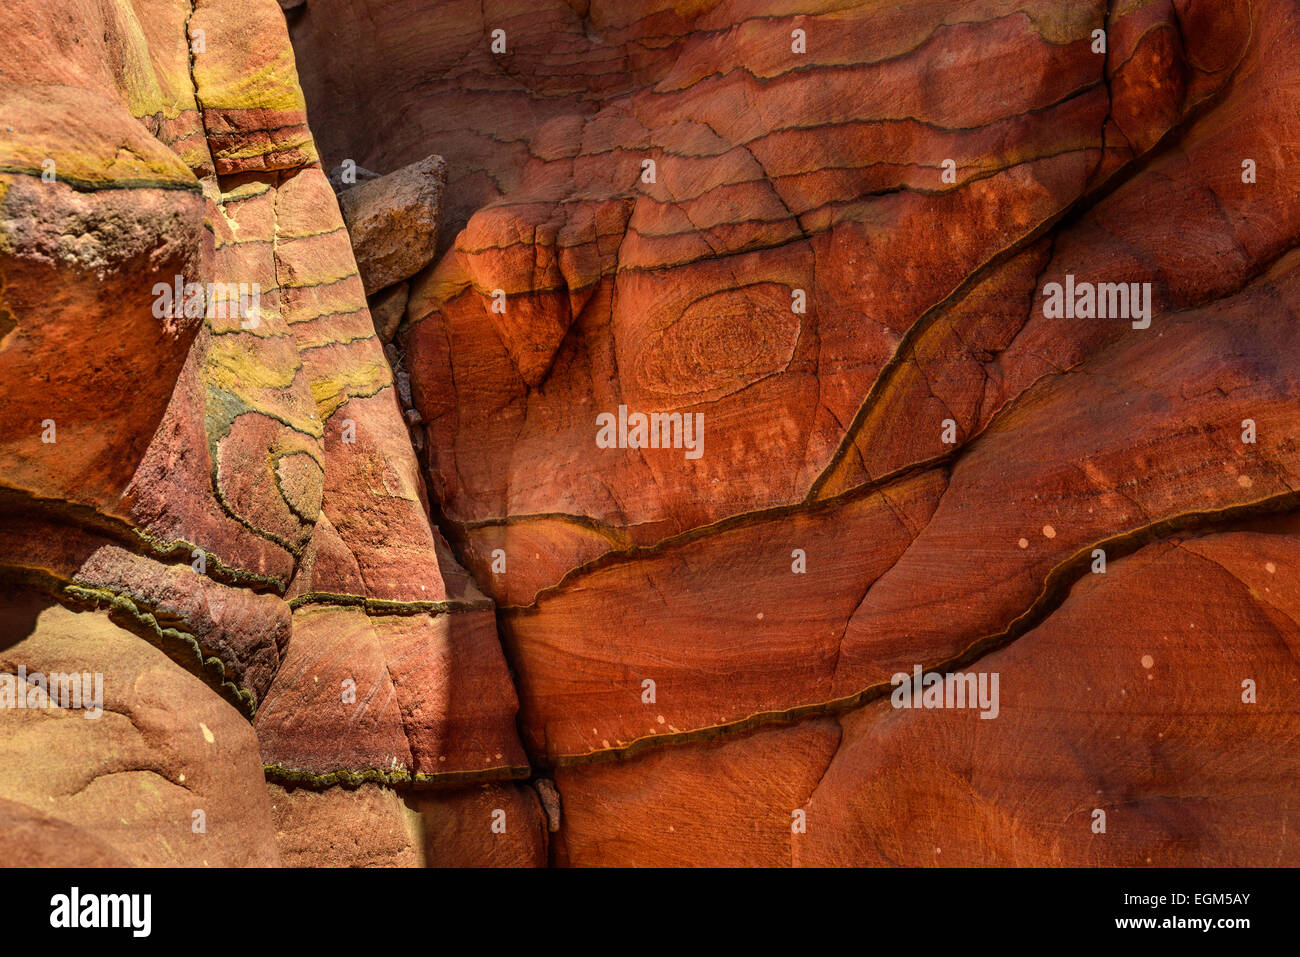 Fragment of eroded sandstone and limestone wall, Colored Canyon, Sinai, Egypt. - Stock Image